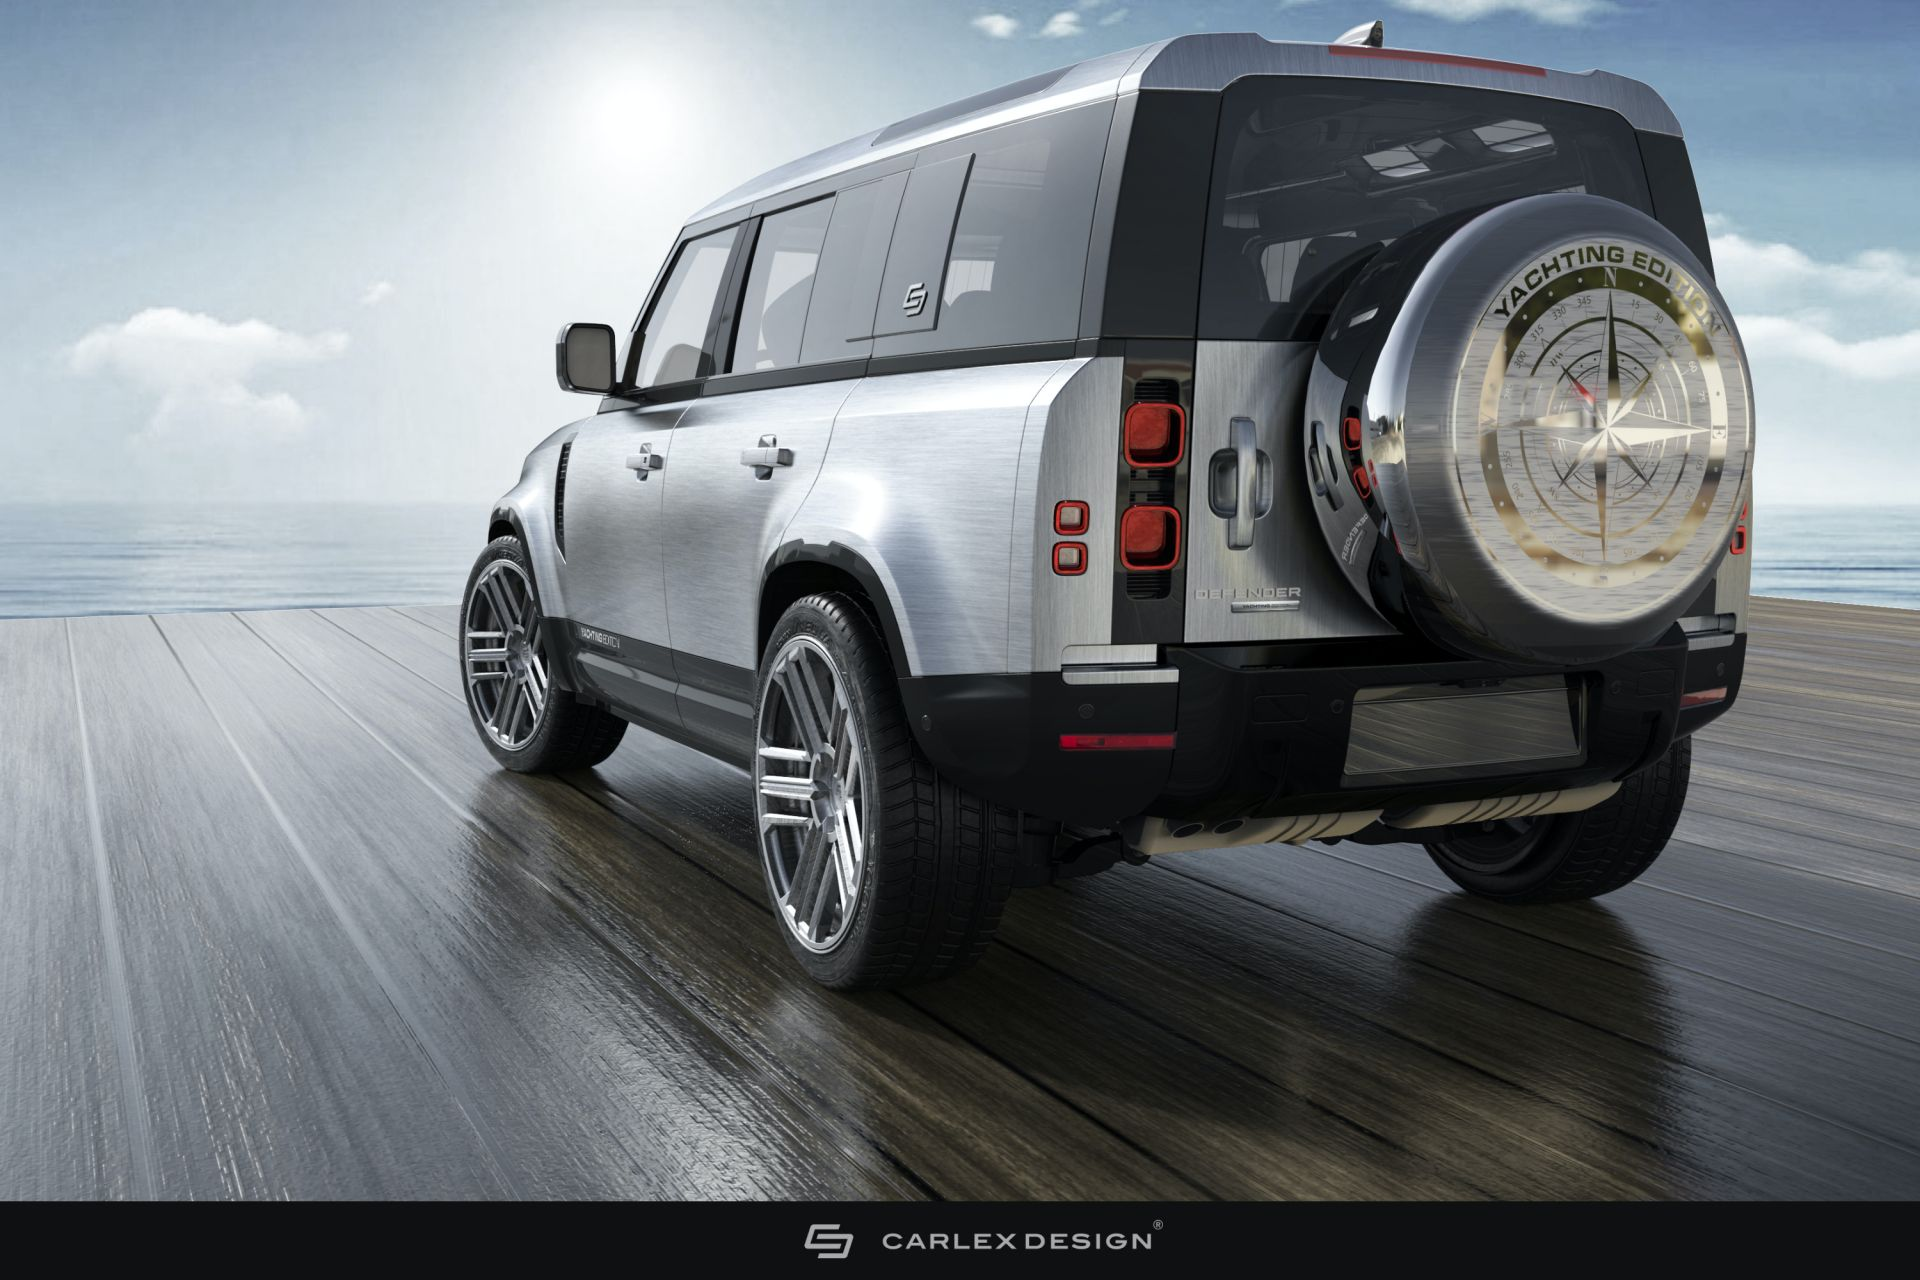 Land-Rover-Defender-Yachting-Edition-by-Carlex-Design-4